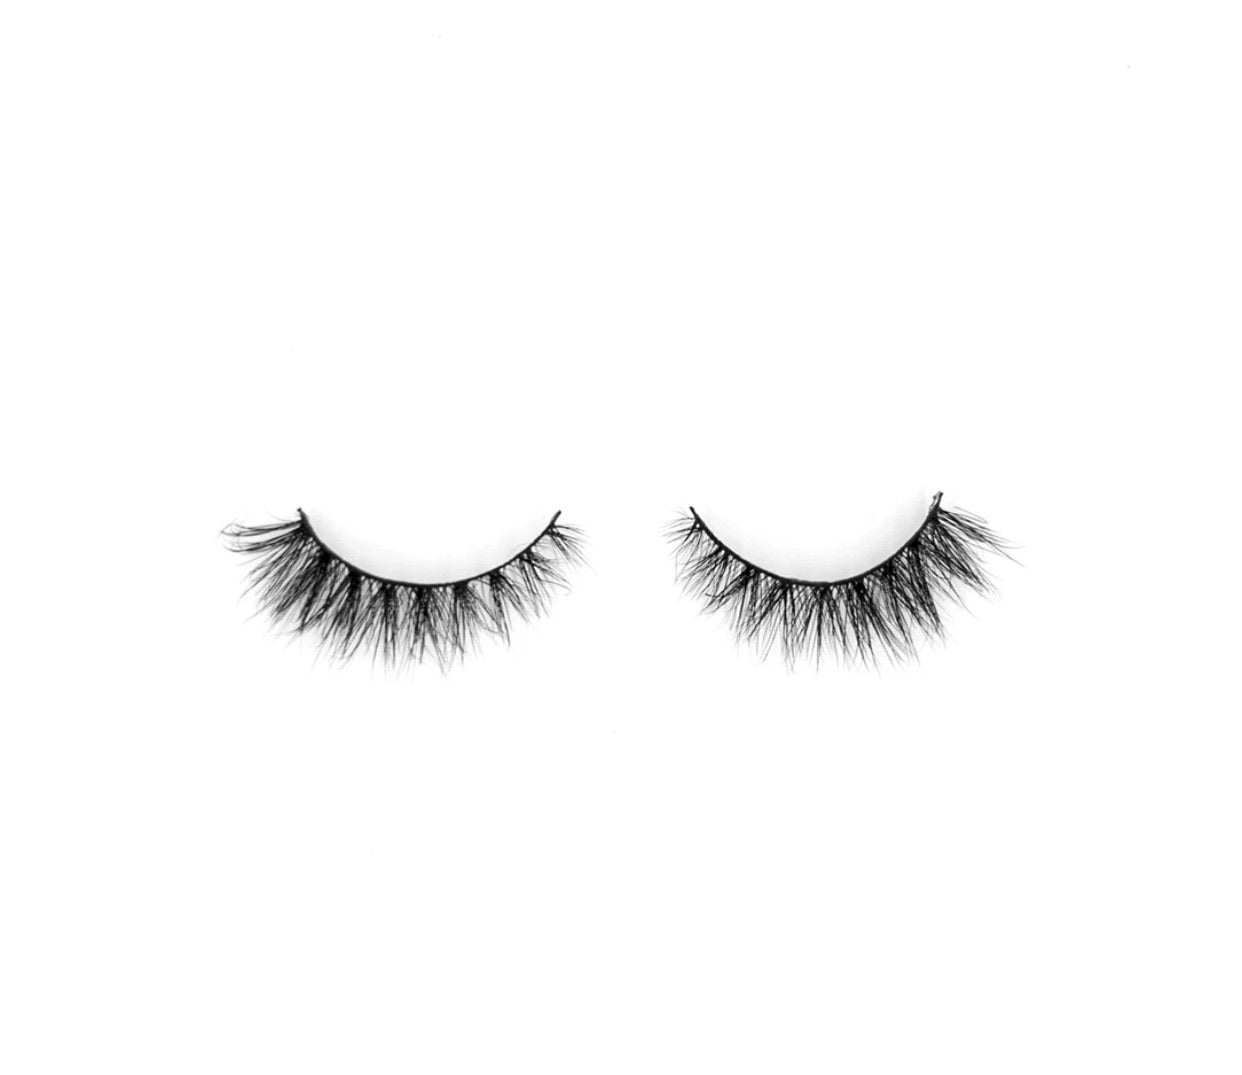 Ary Rose Lashes by Prados Beauty